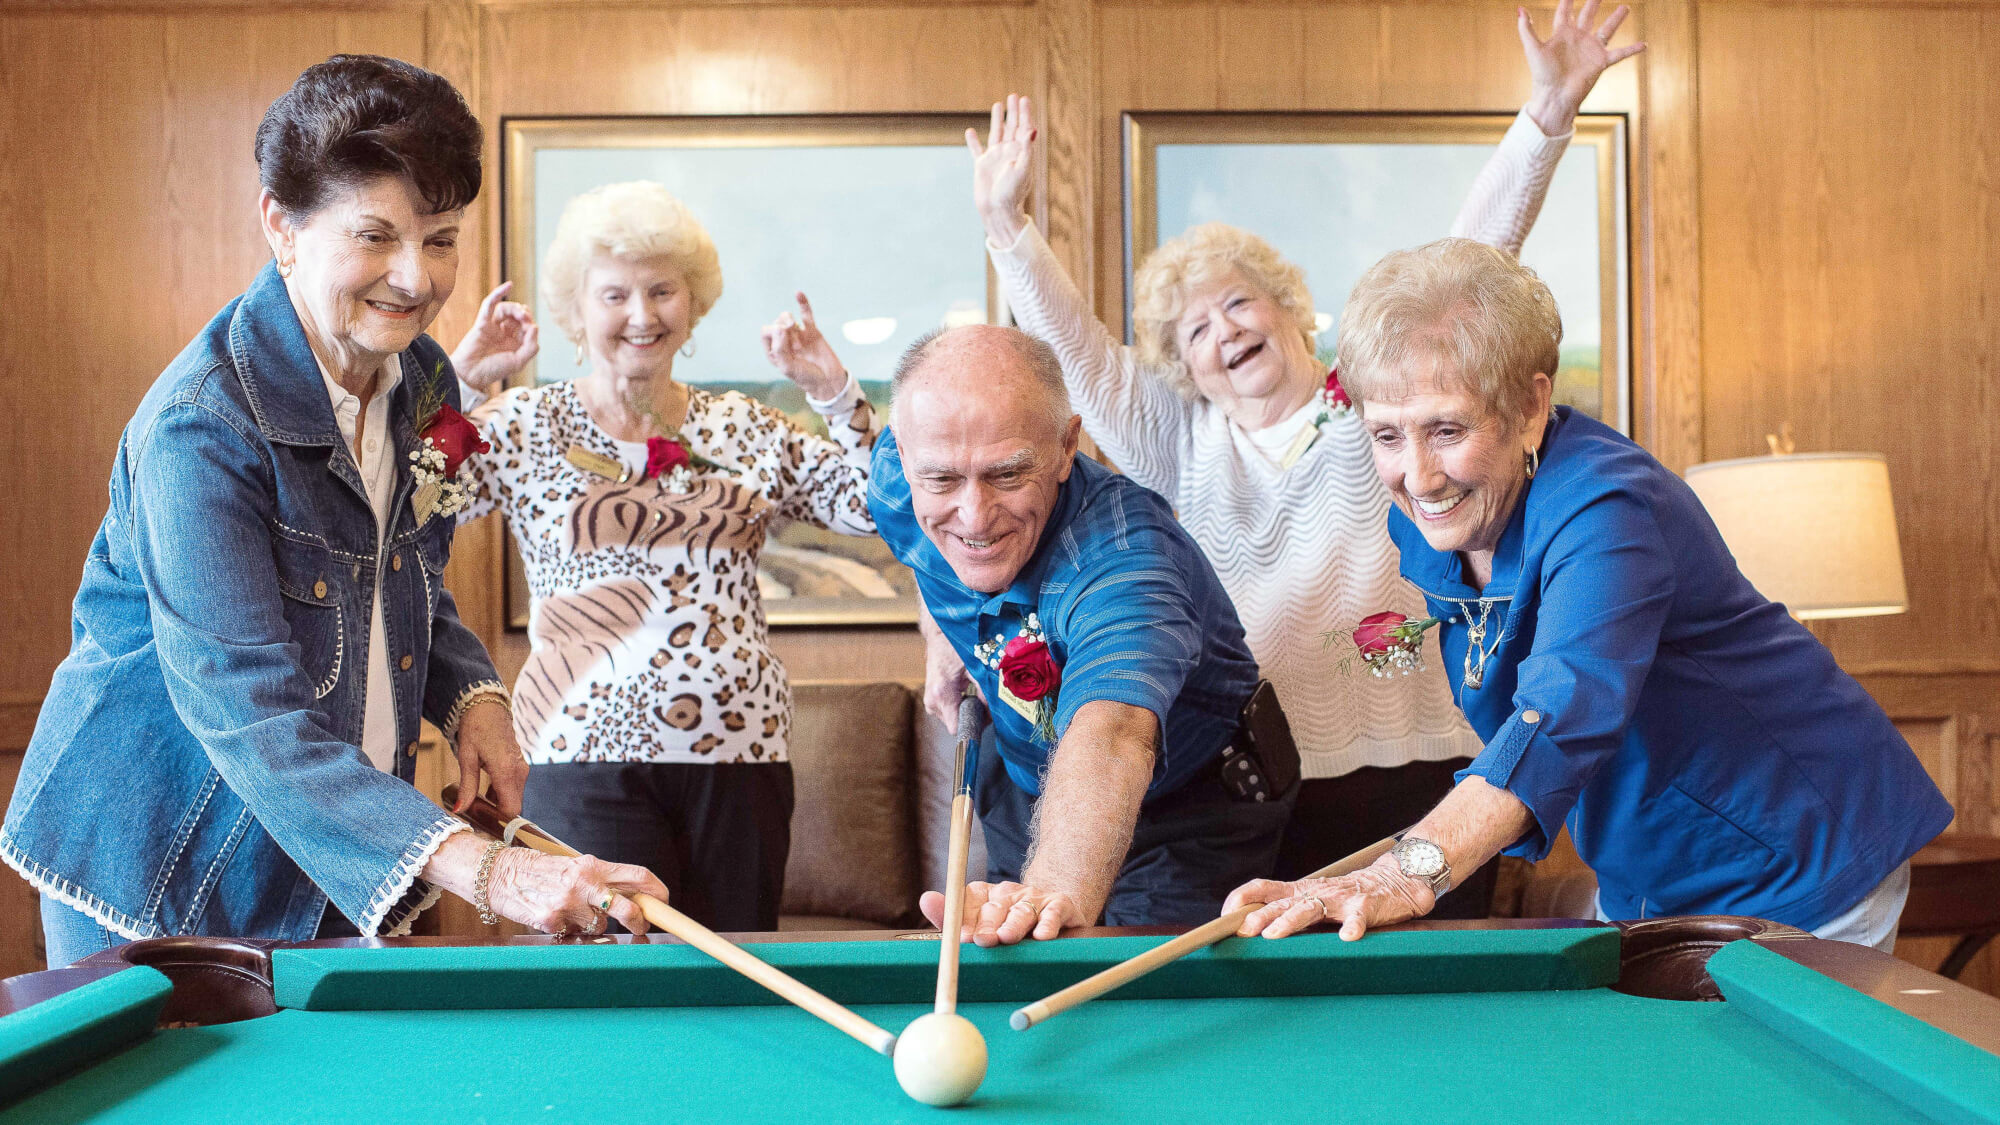 Residents playing pool and having a blast at Ashwood Square